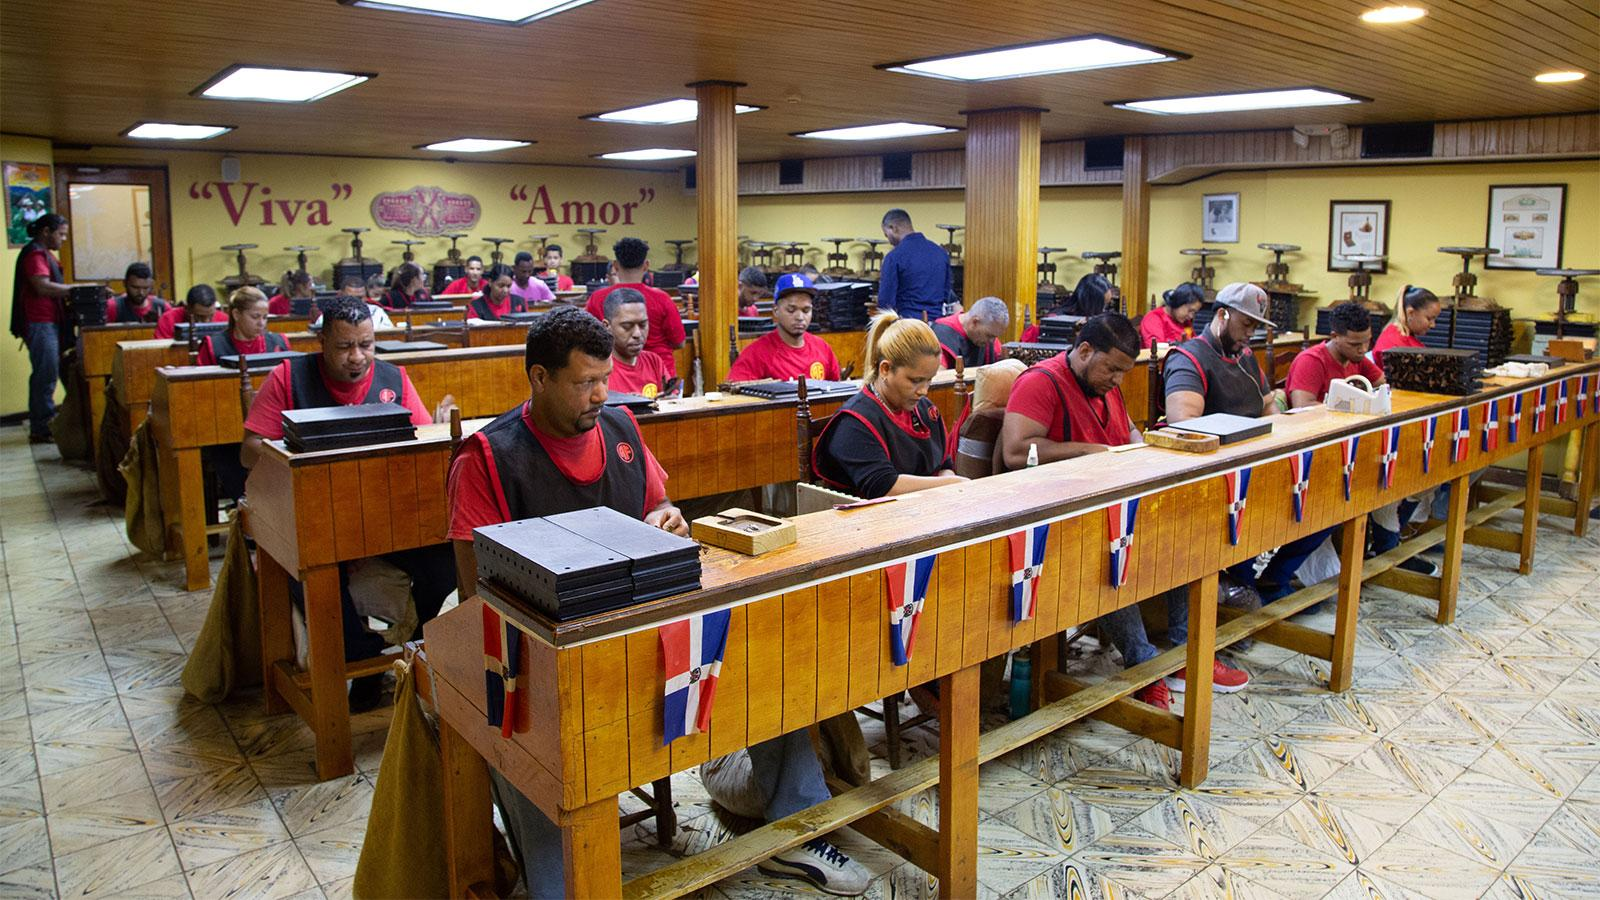 The Fuente Fuente OpusX rolling gallery, dedicated to only making one brand, which is one of the hardest to find cigars in the world.